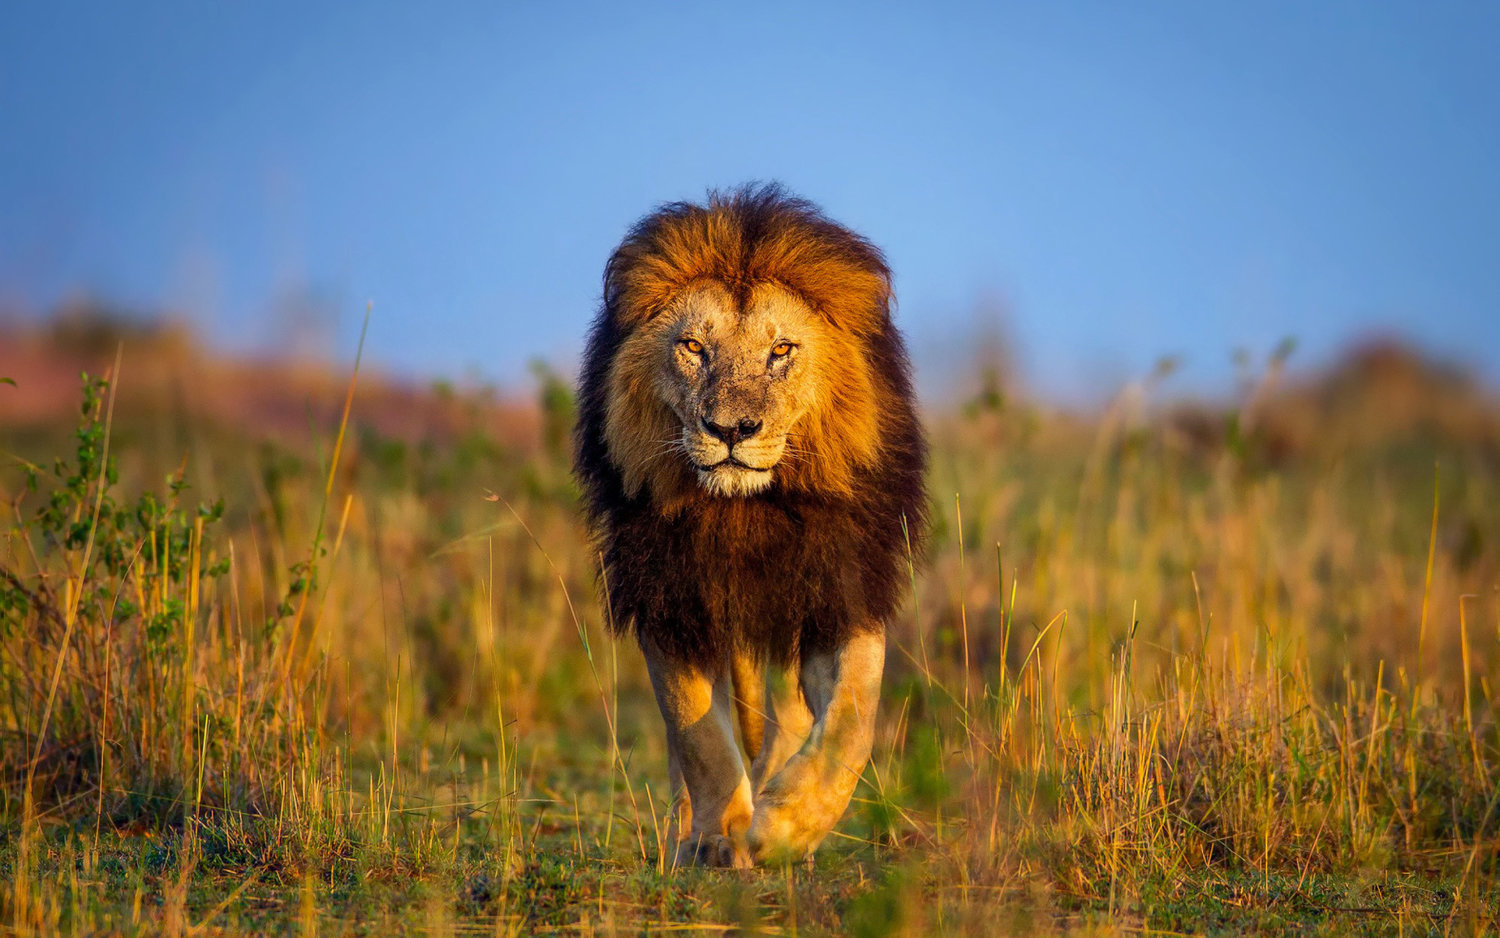 4433983-lion-wallpapers.jpg